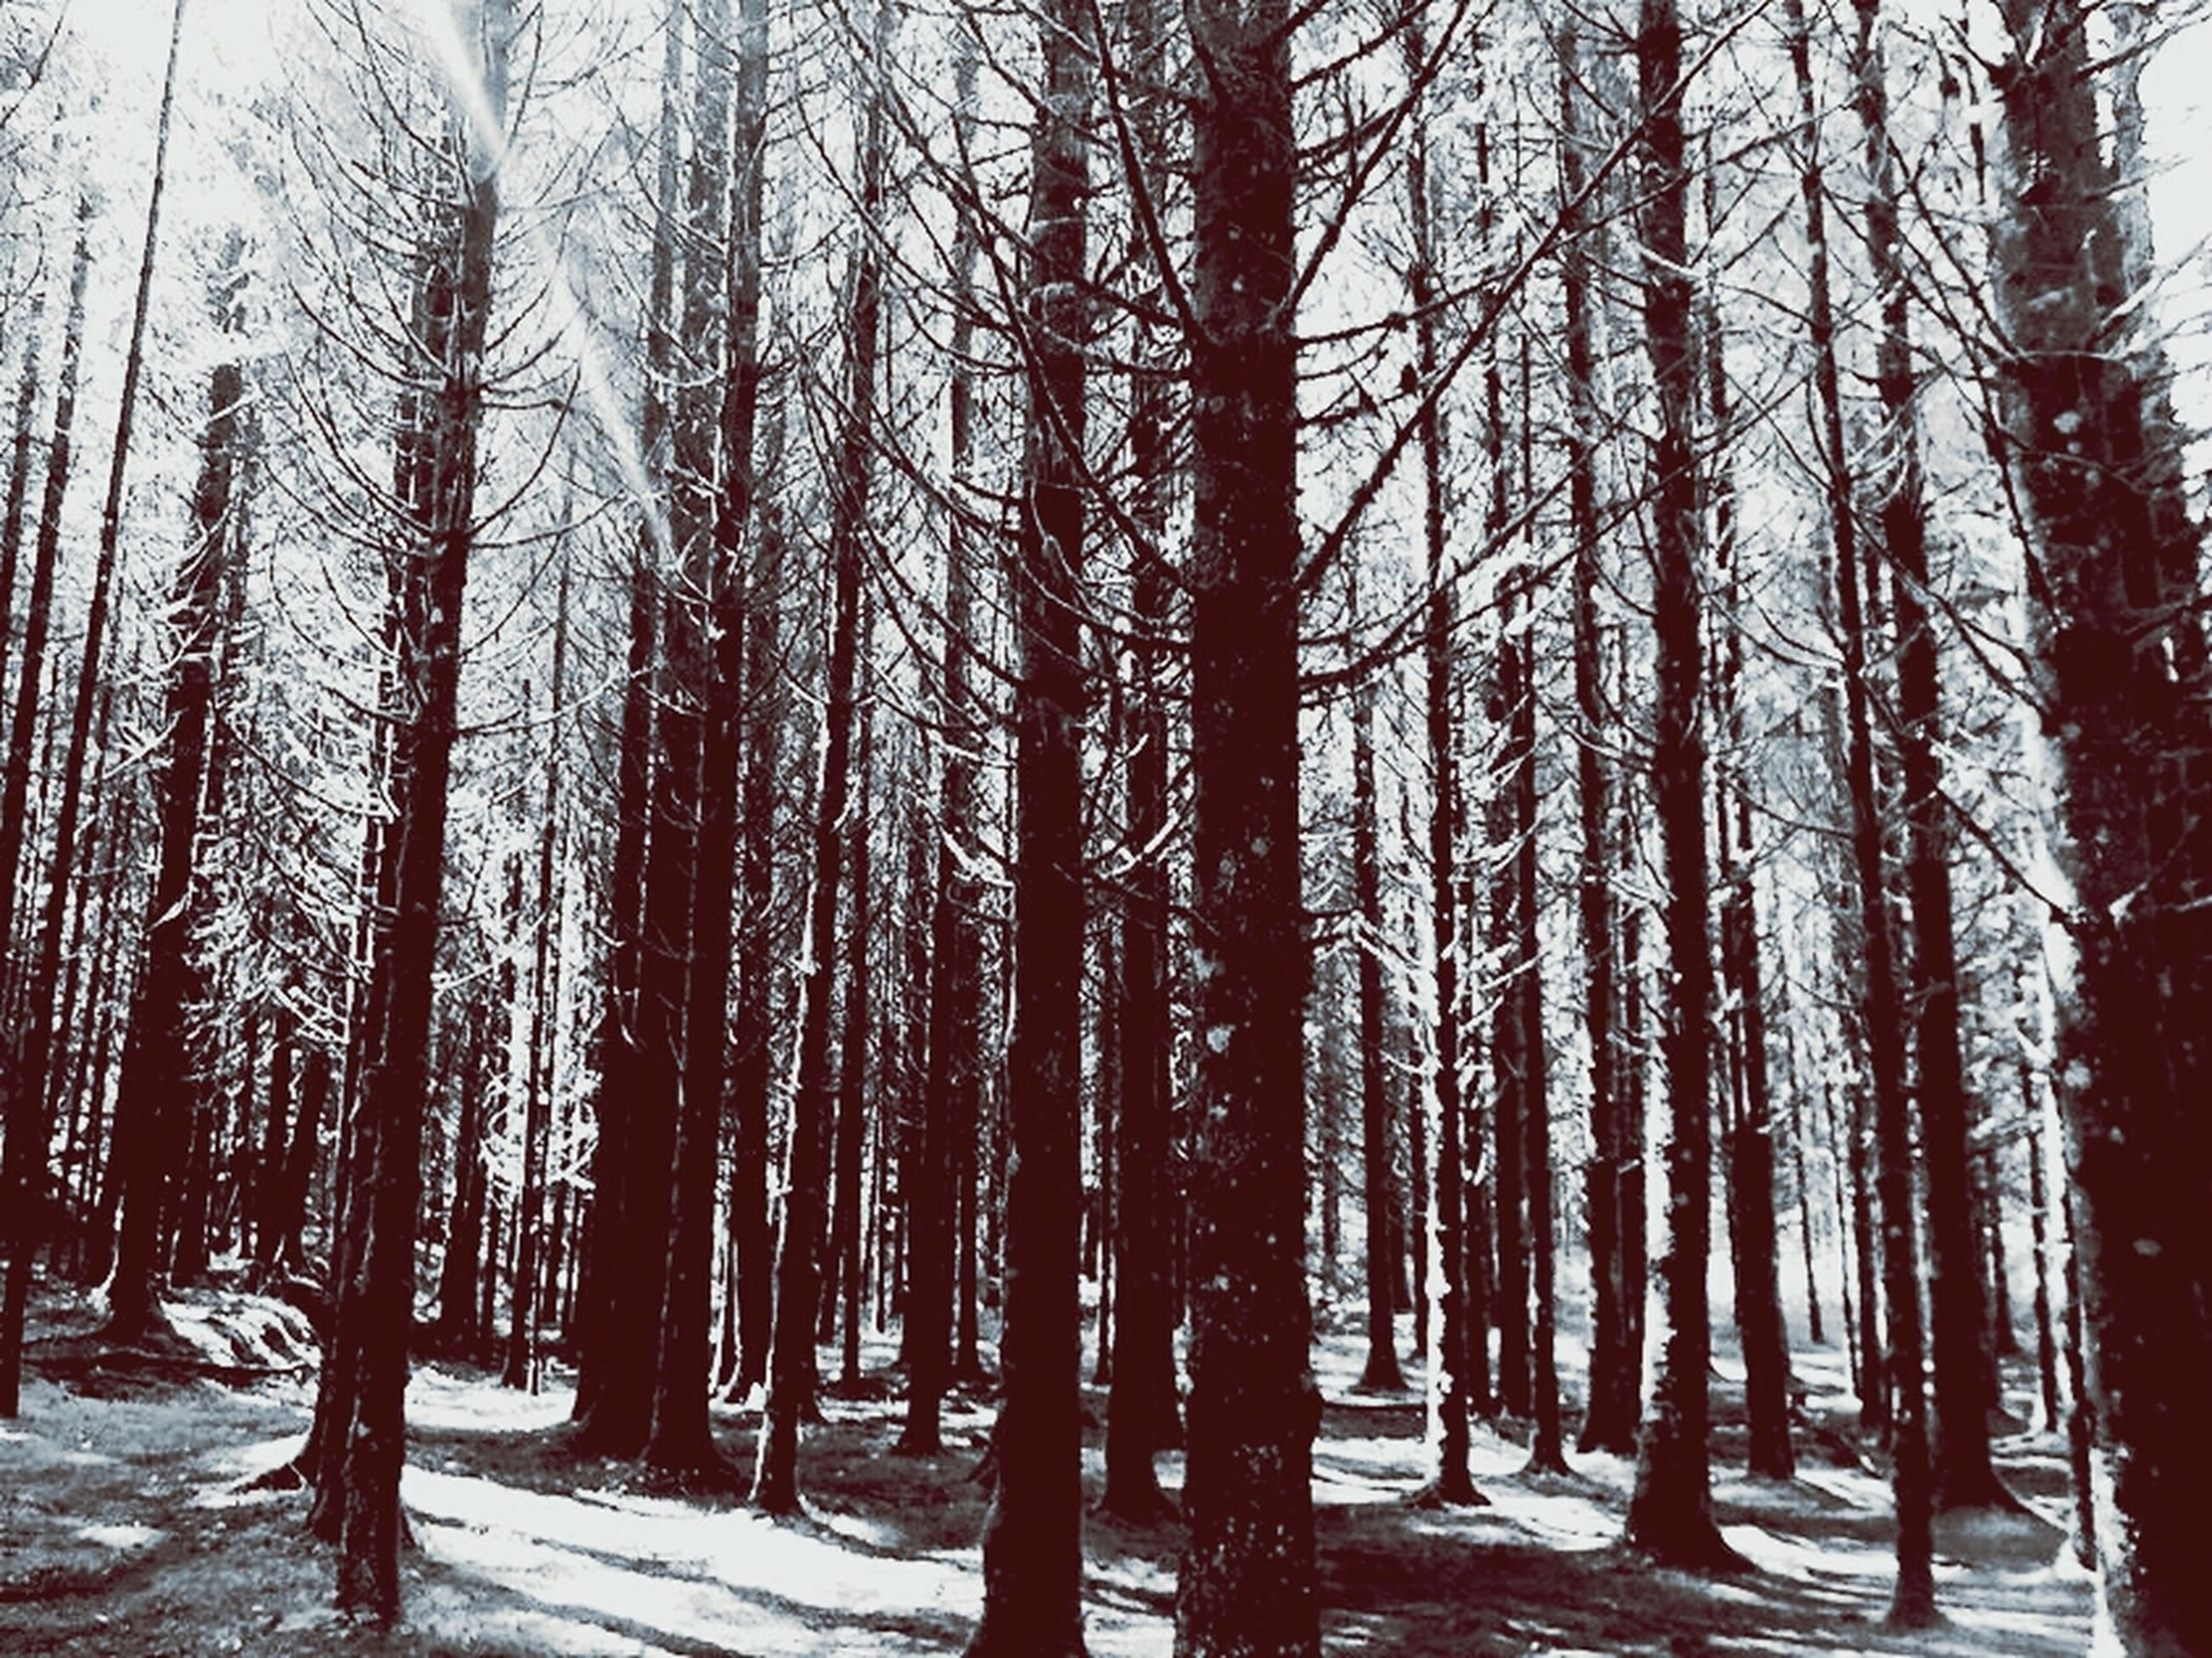 tree, tree trunk, snow, winter, cold temperature, tranquility, nature, tranquil scene, season, woodland, forest, beauty in nature, branch, growth, scenics, bare tree, weather, treelined, landscape, non-urban scene